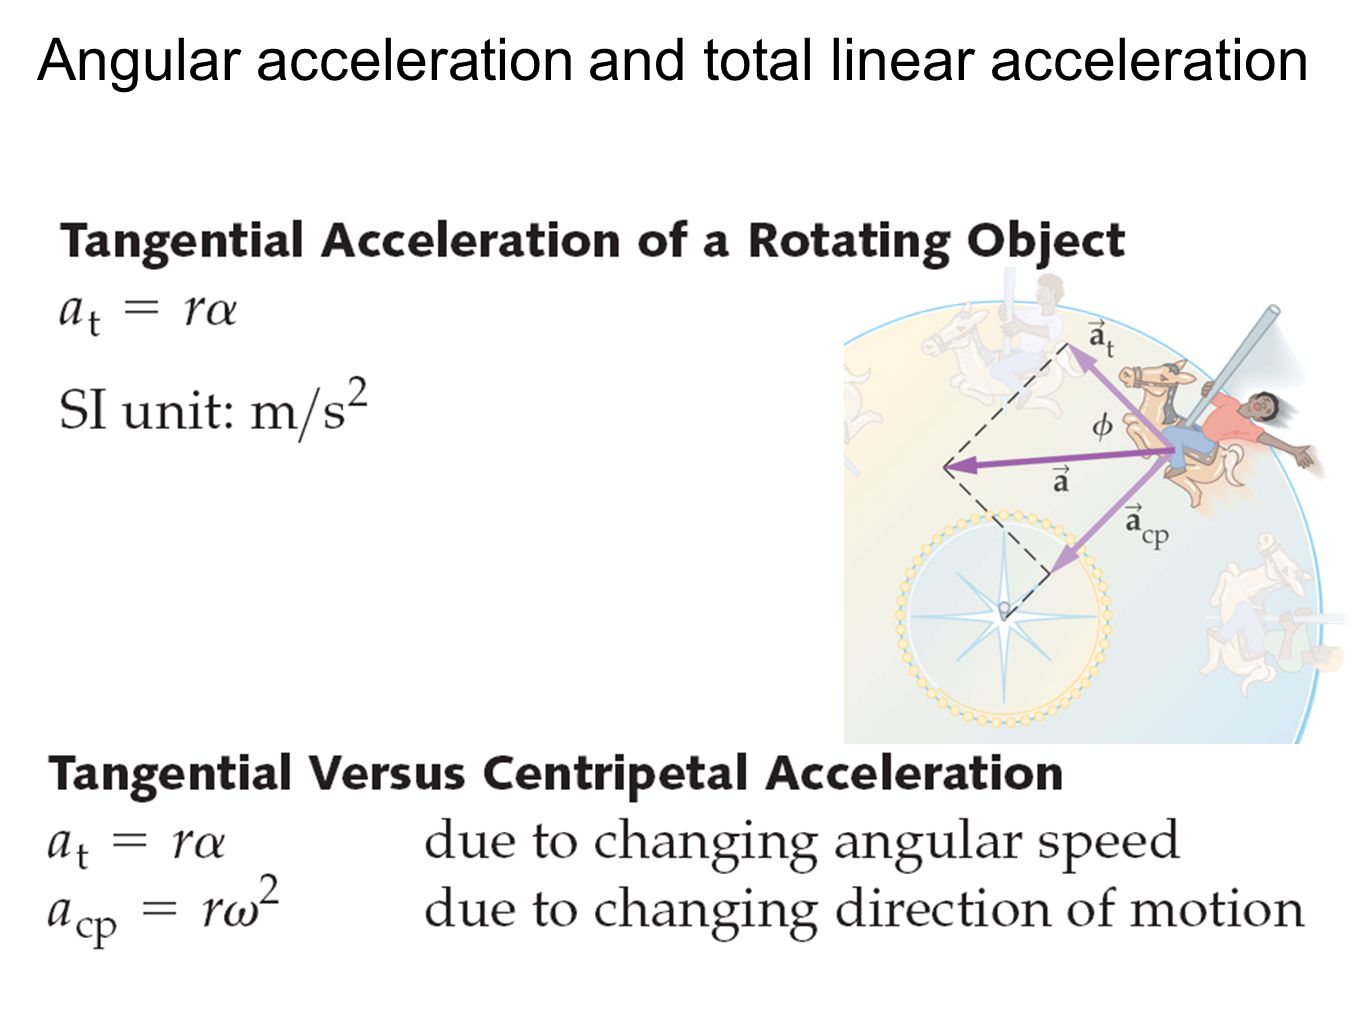 Angular acceleration and total linear acceleration